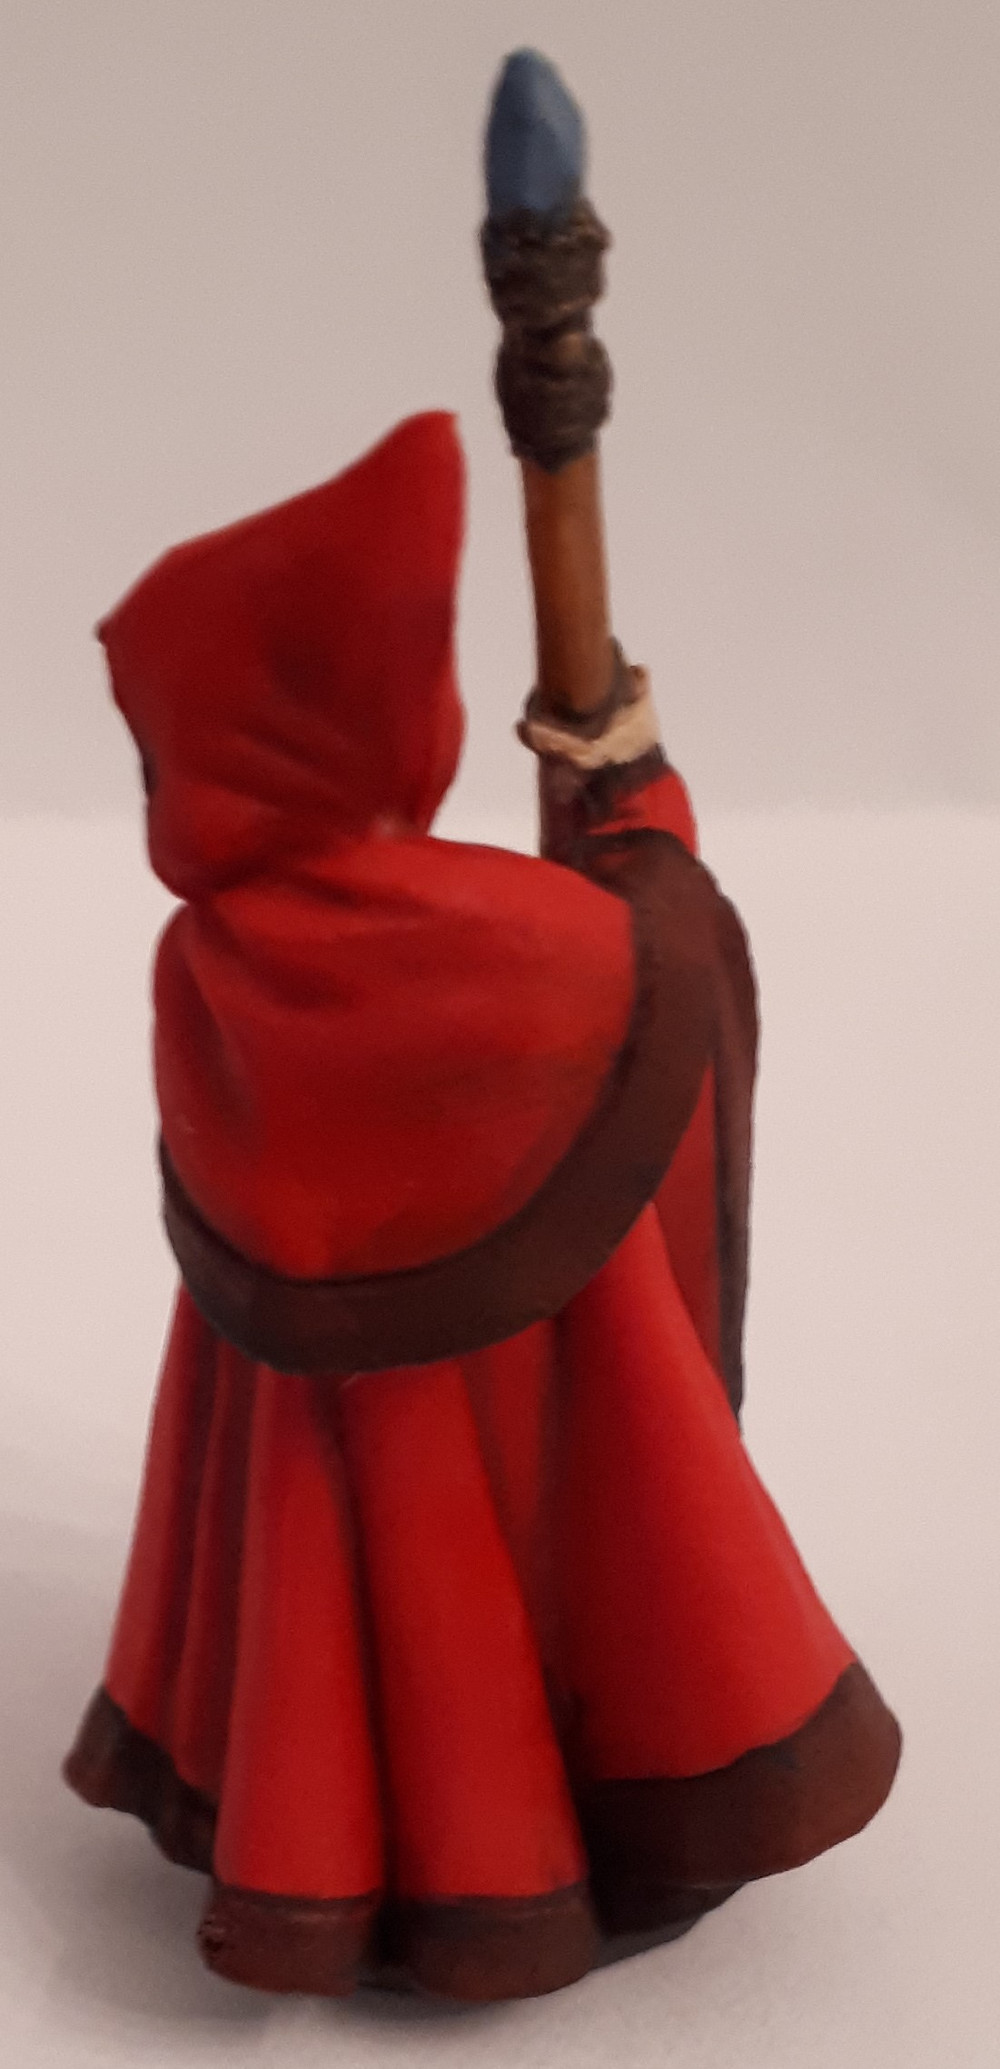 I was doubtful at first, but the lining between the colors on the cloak really added to the look